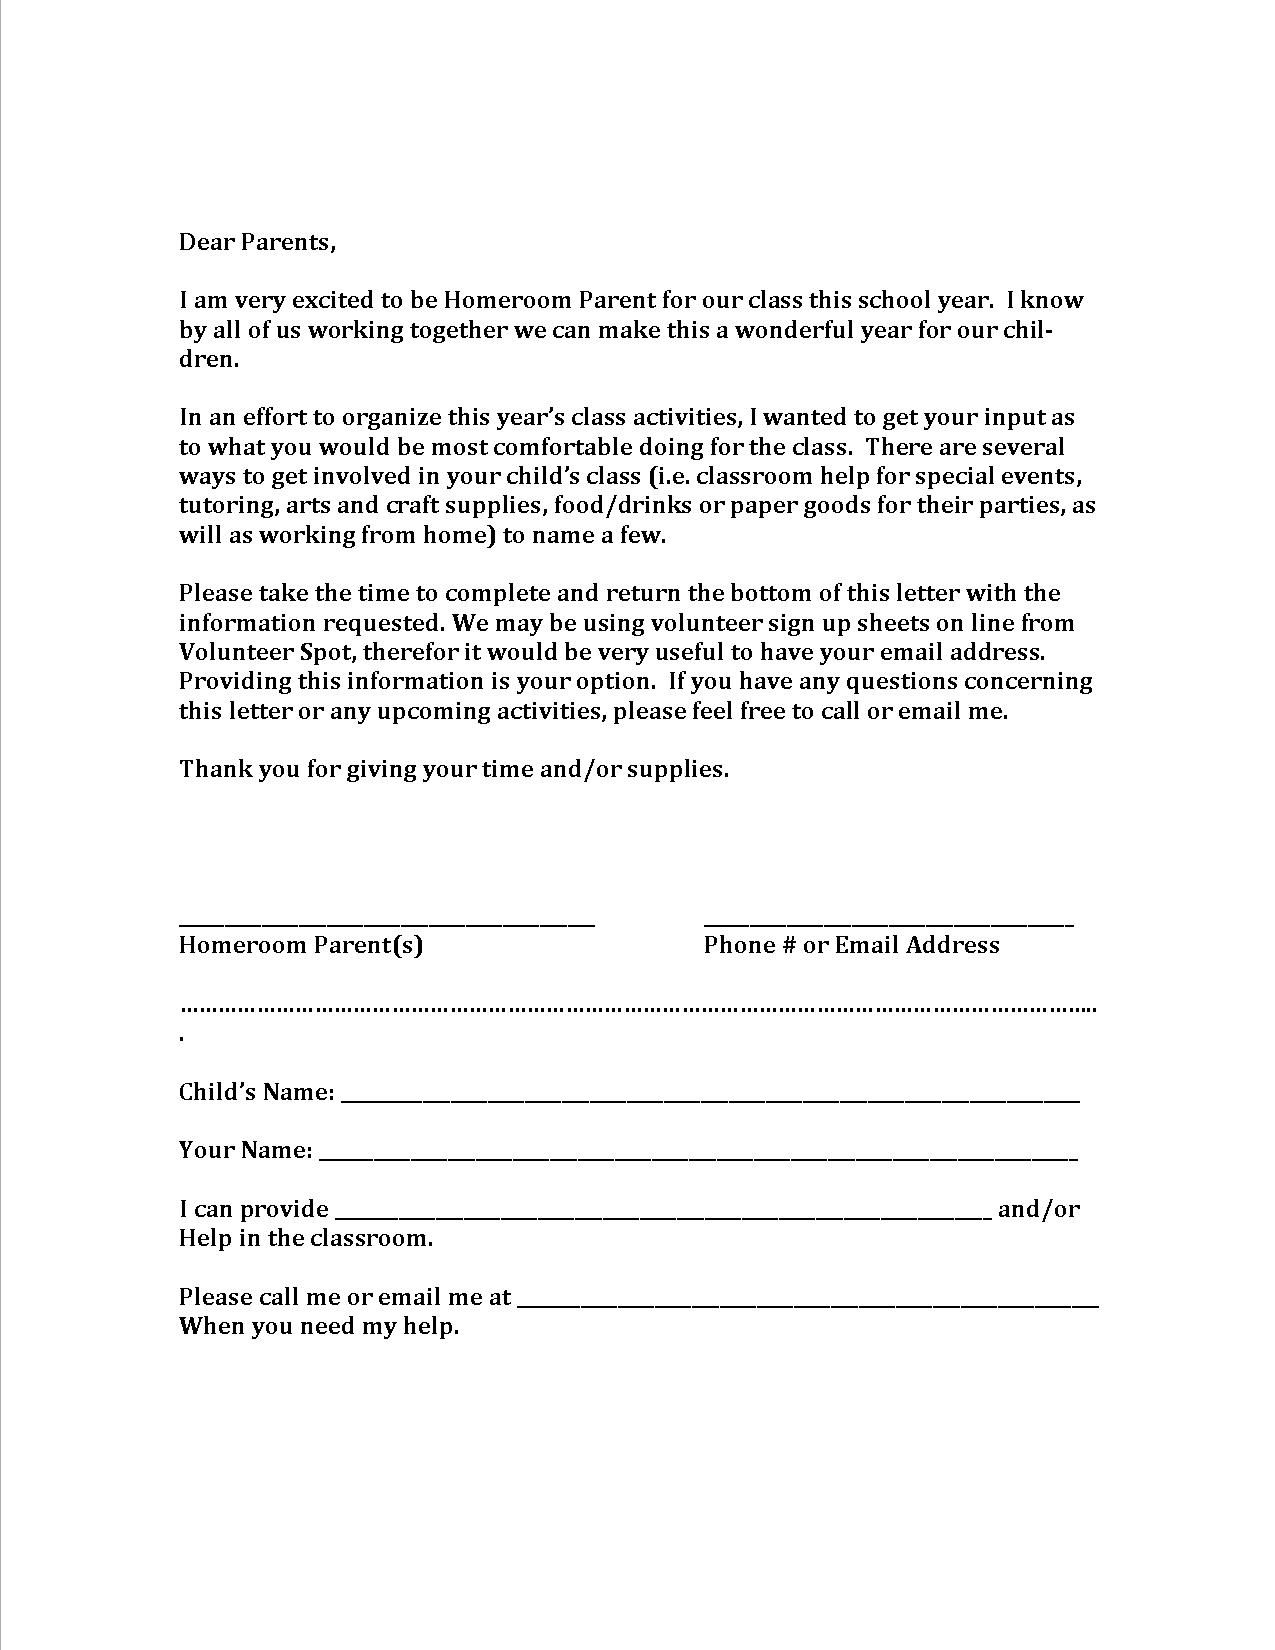 Volunteer letter template hdvolunteer letter template for How to write a cover letter for volunteering